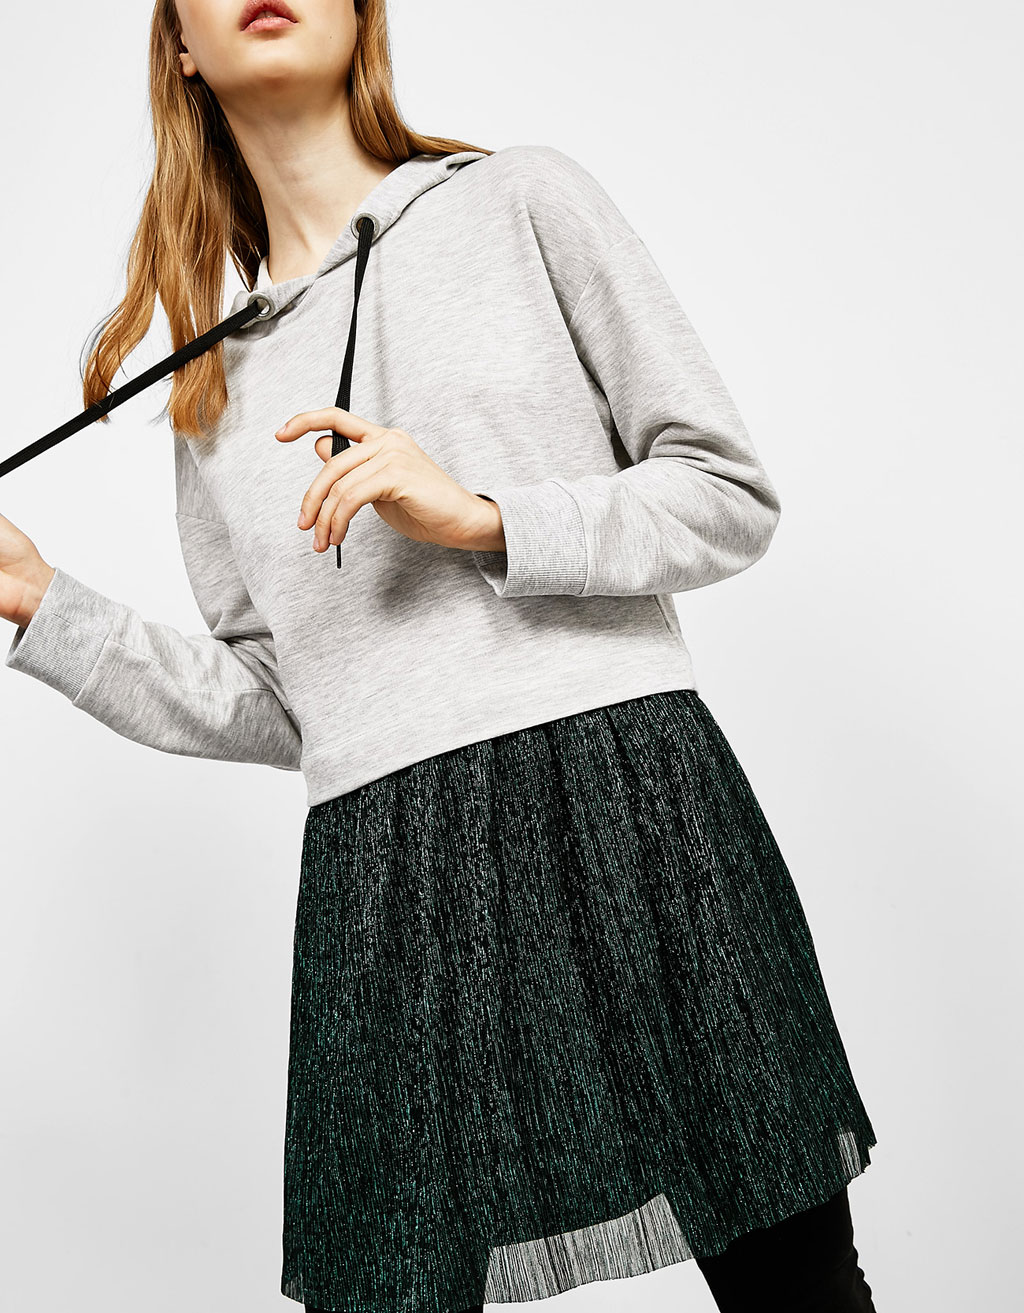 Dress with plush sweatshirt top and shimmer skirt